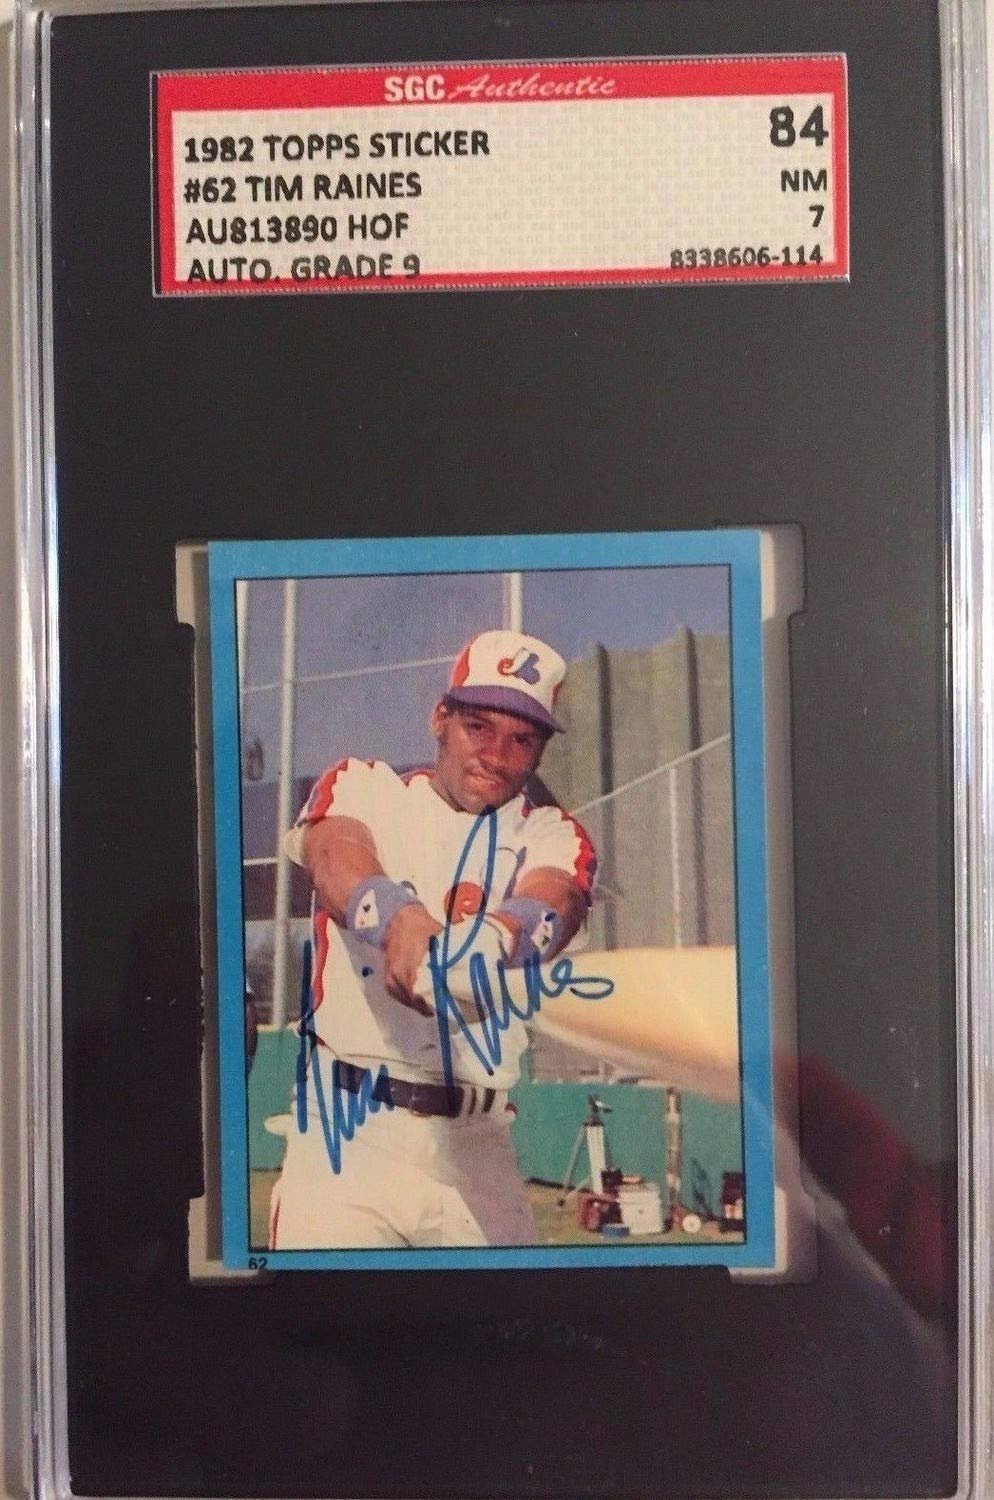 1982 Topps Sticker Autographed Signed #62 Autographed Signed Tim Raines Sgc 84 Nm 7W 9 Certified Authentic